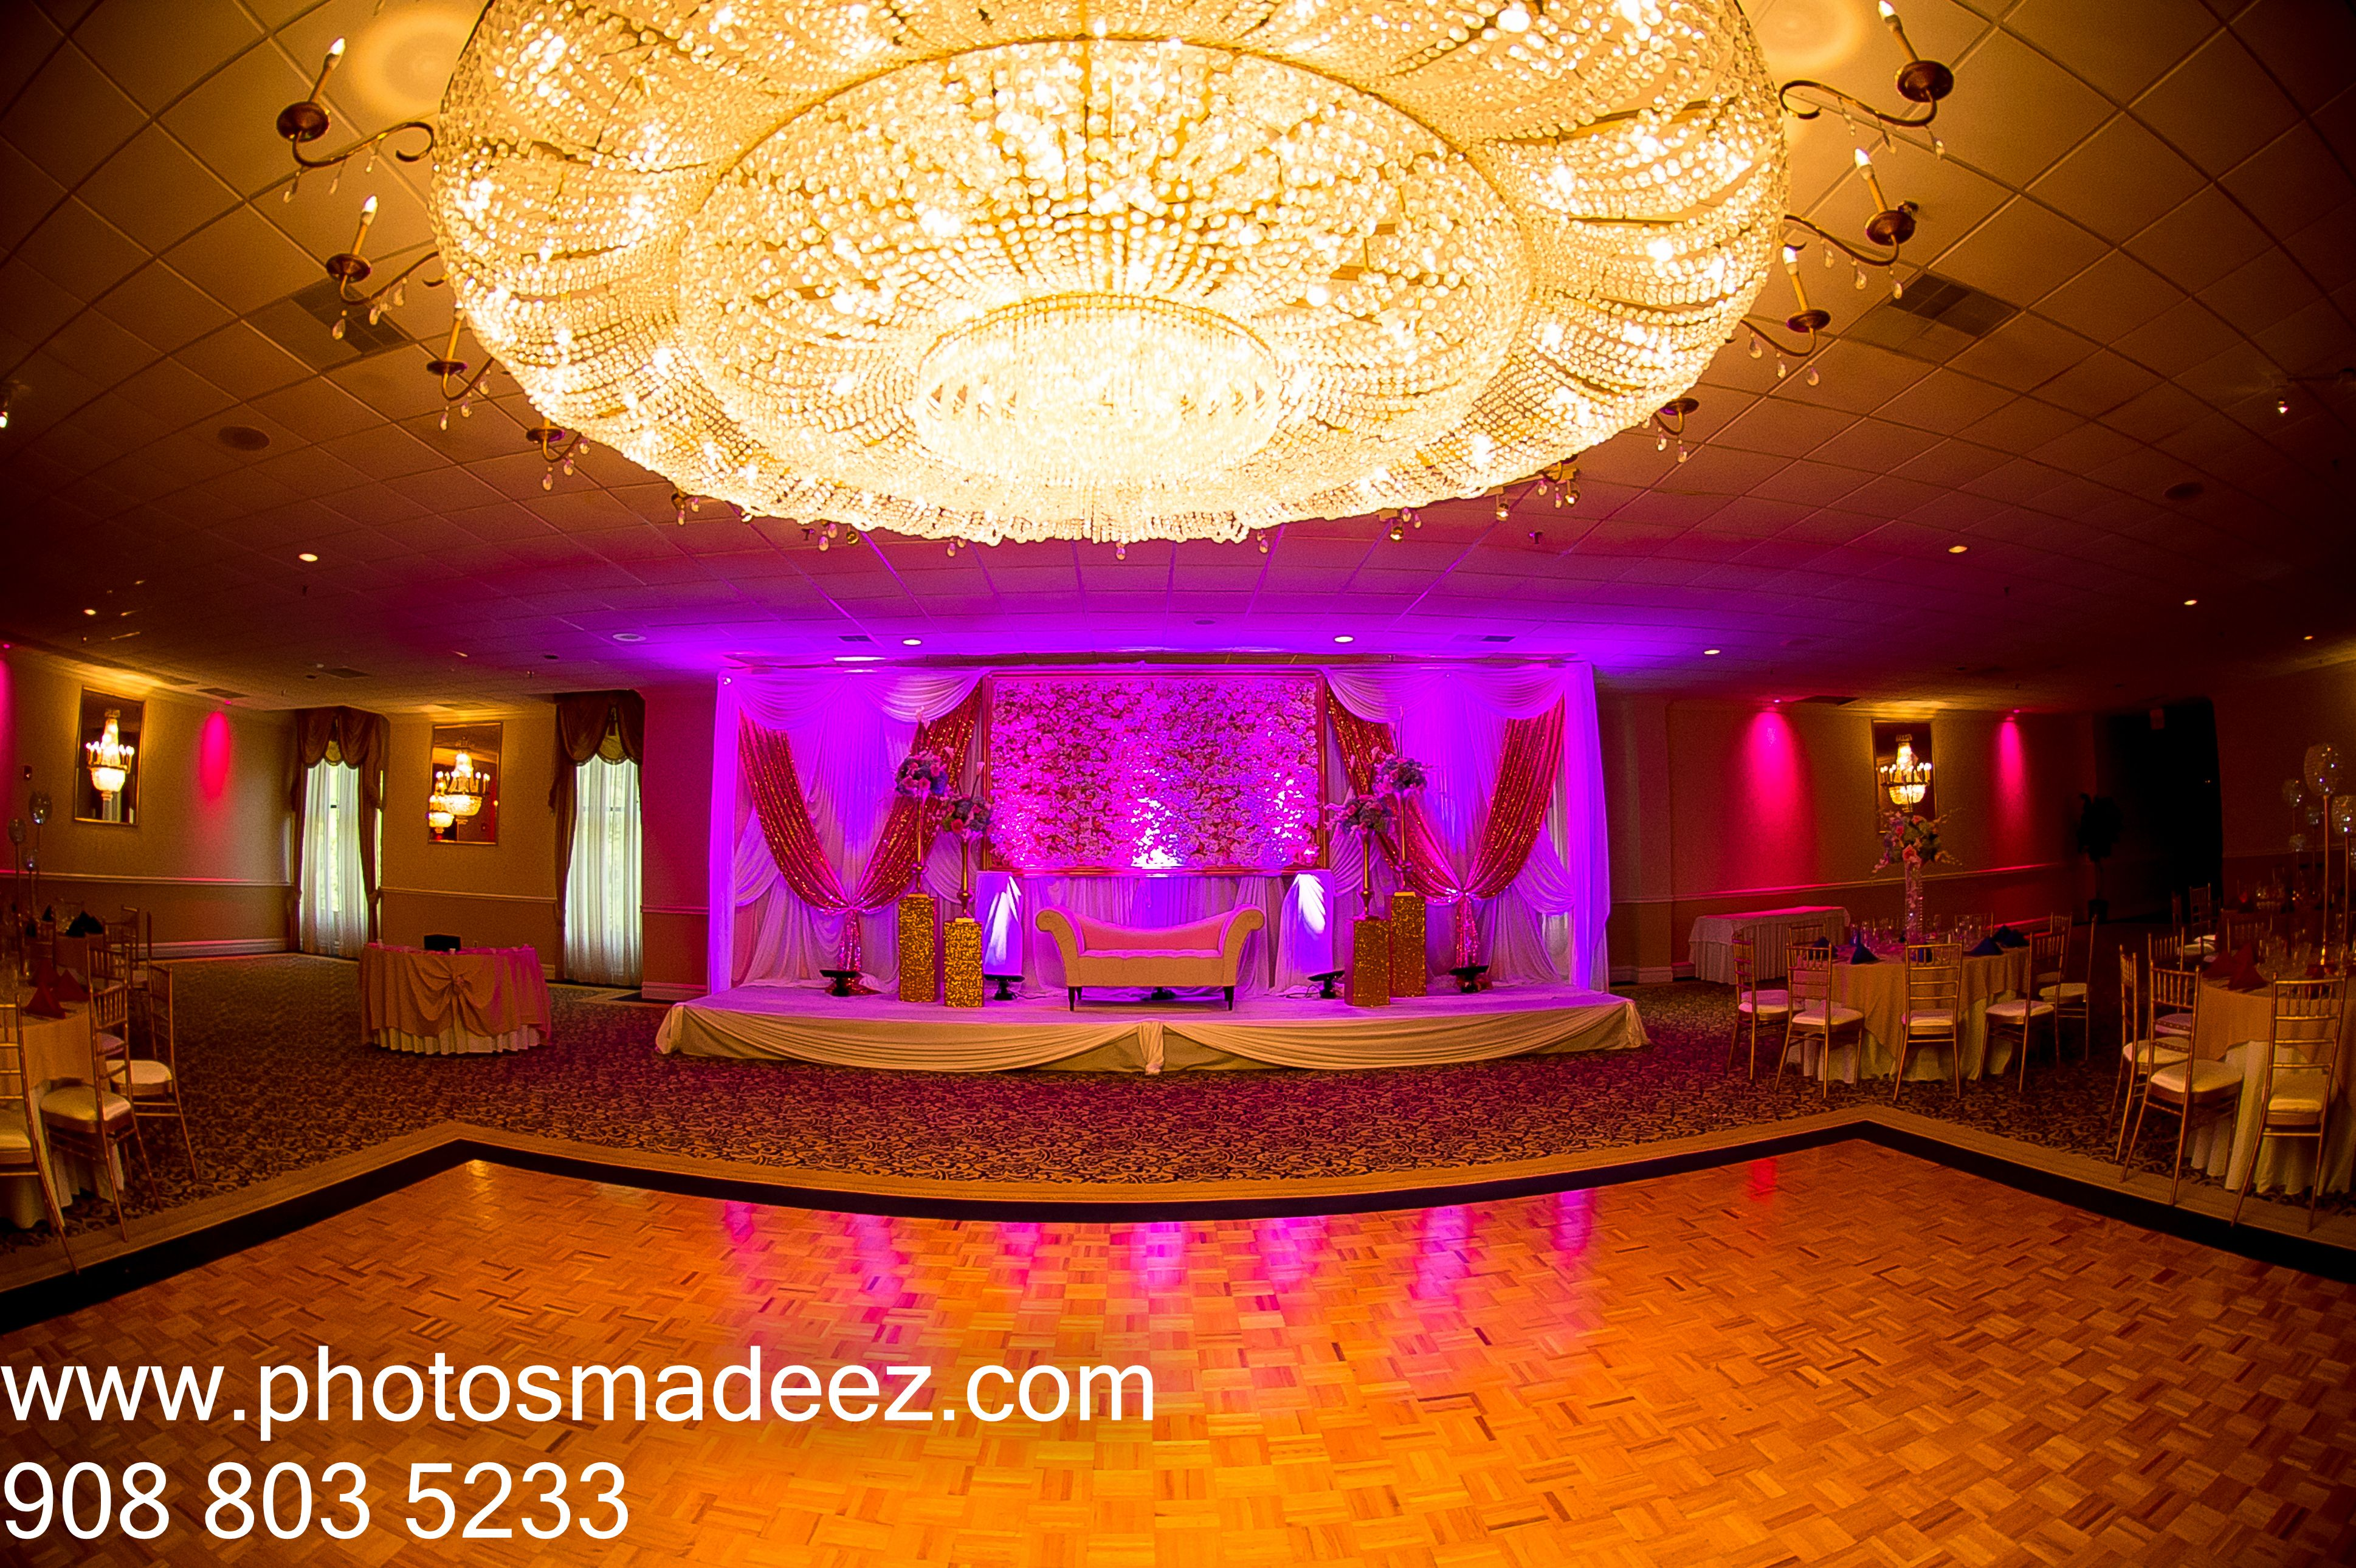 Images of wedding decor Wedding Decor by Ravi Verma in Gujarati Wedding in Wedding in the